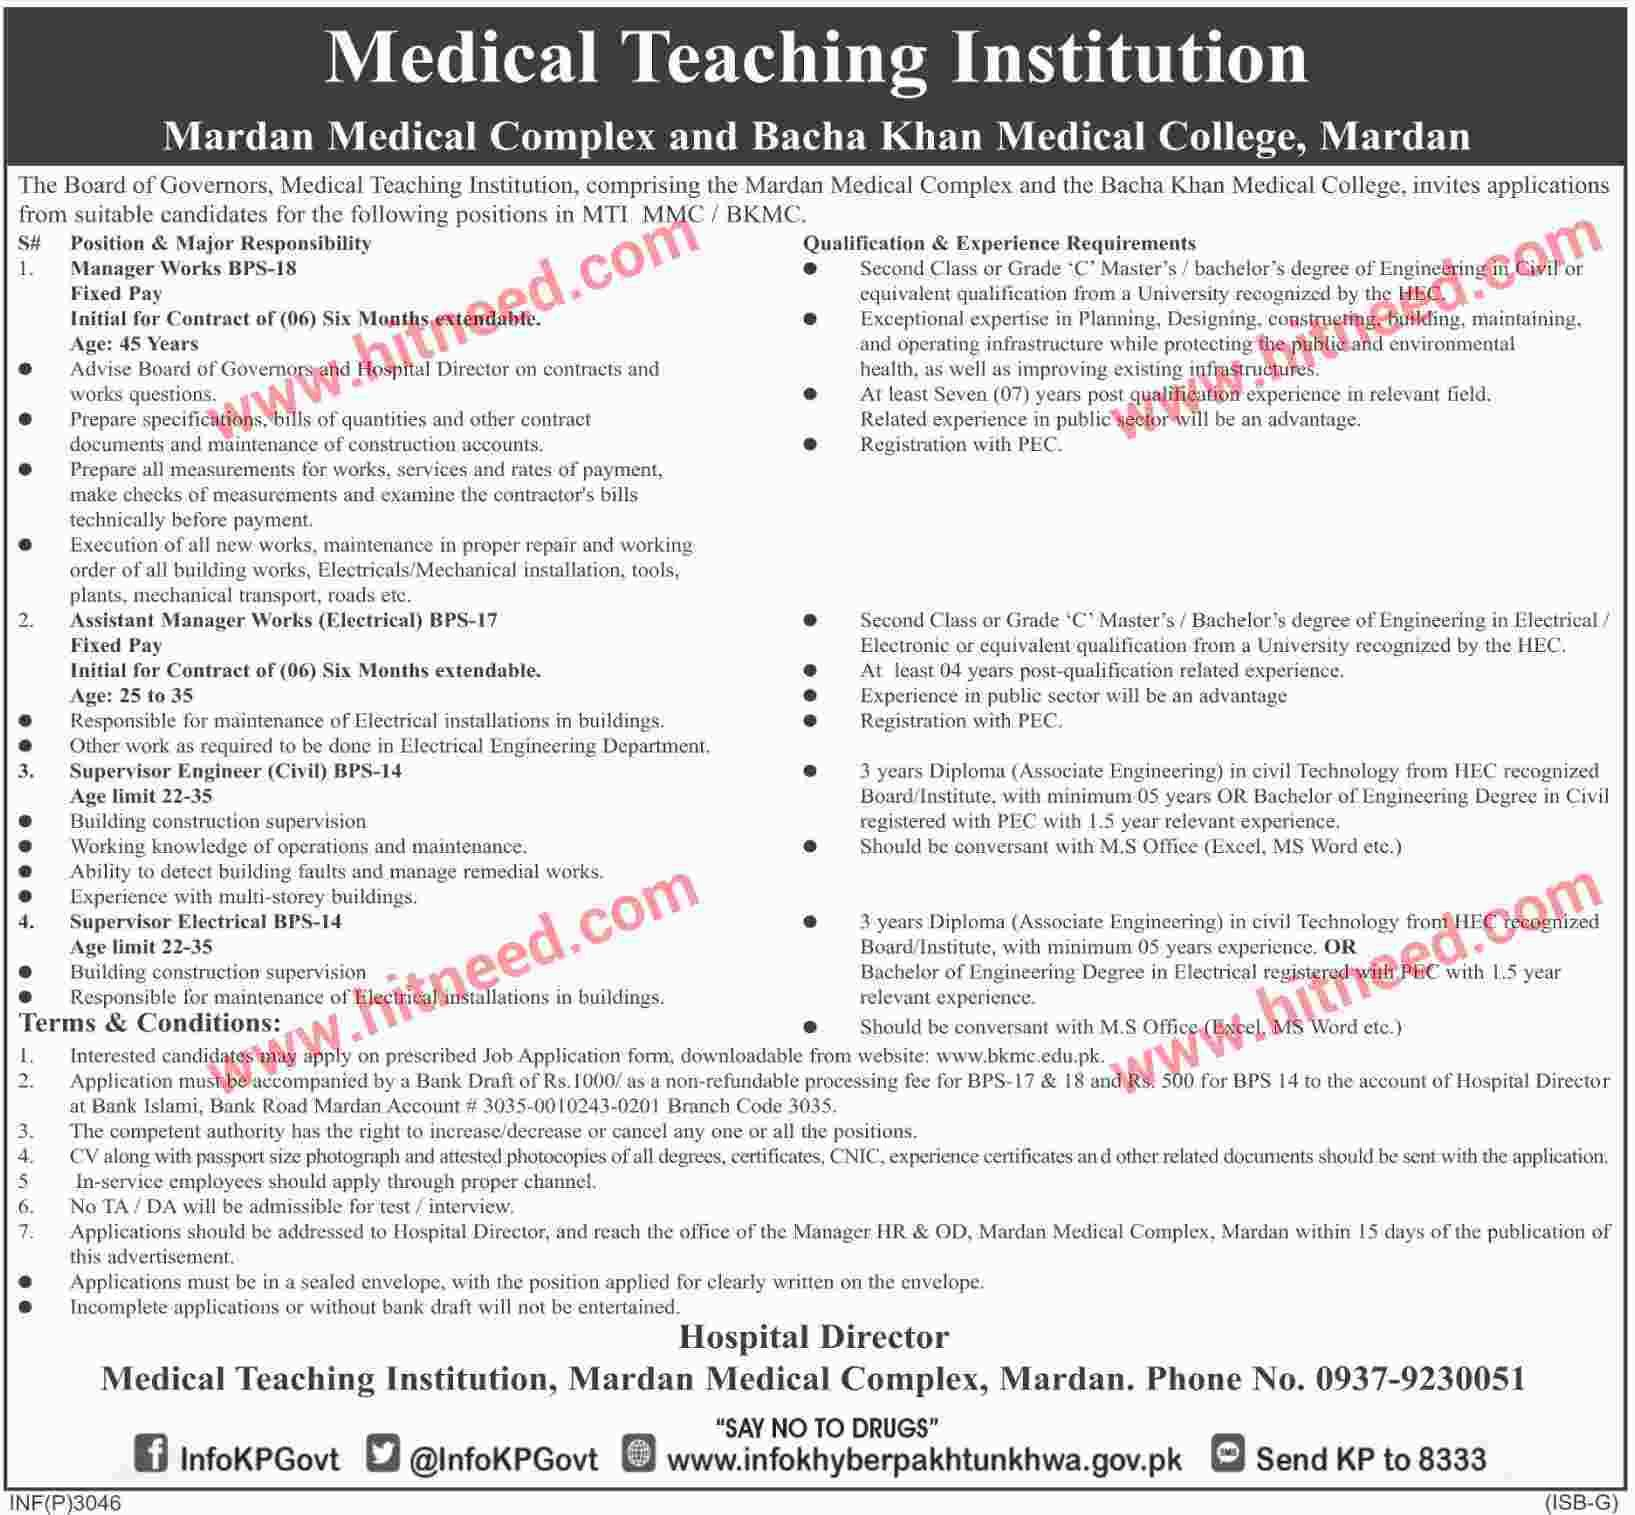 Medical Teaching Institution Mardan Medical Complex  Bacha Khan